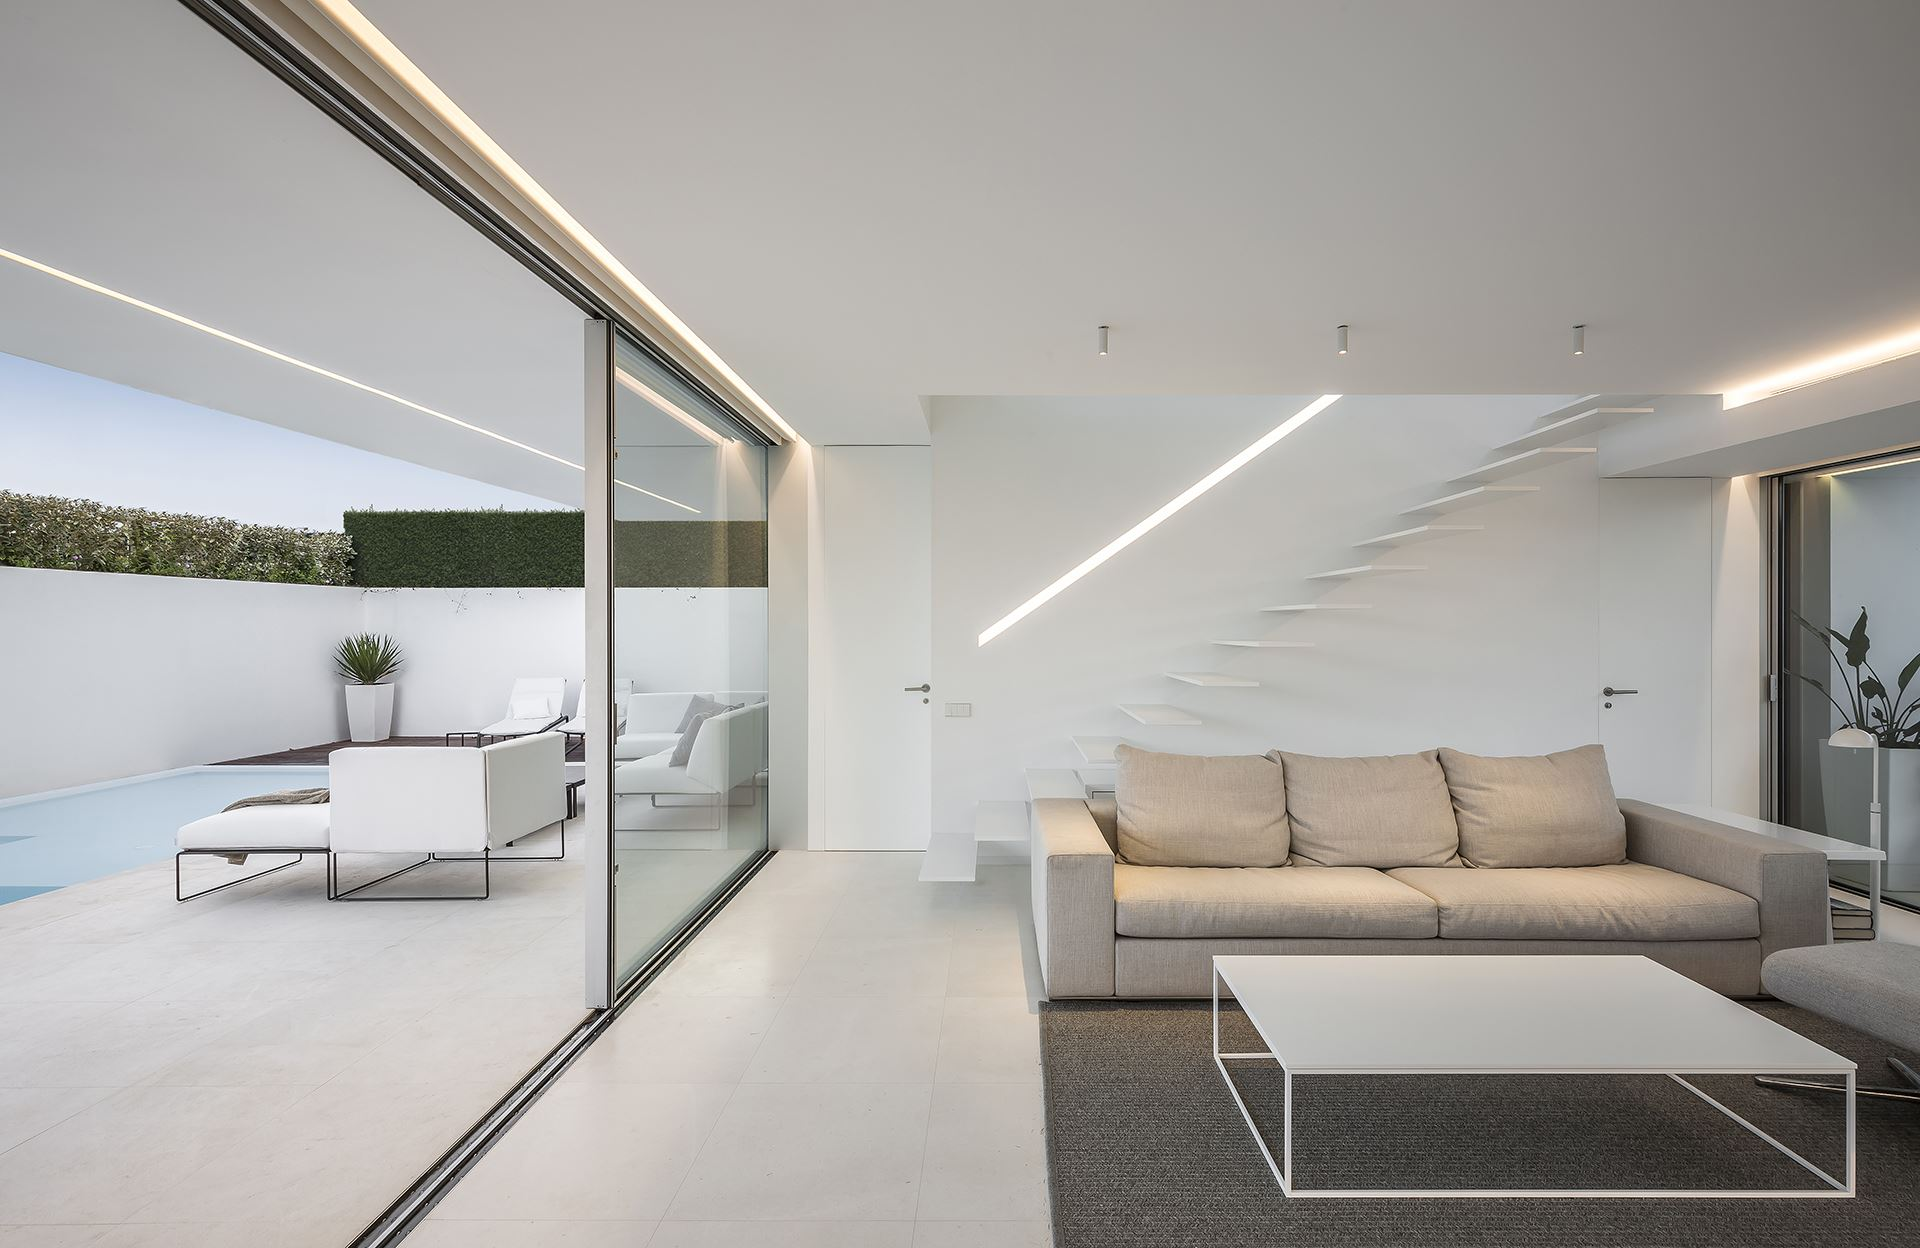 Contemporary Interiors - Gallardo Llopis Architect